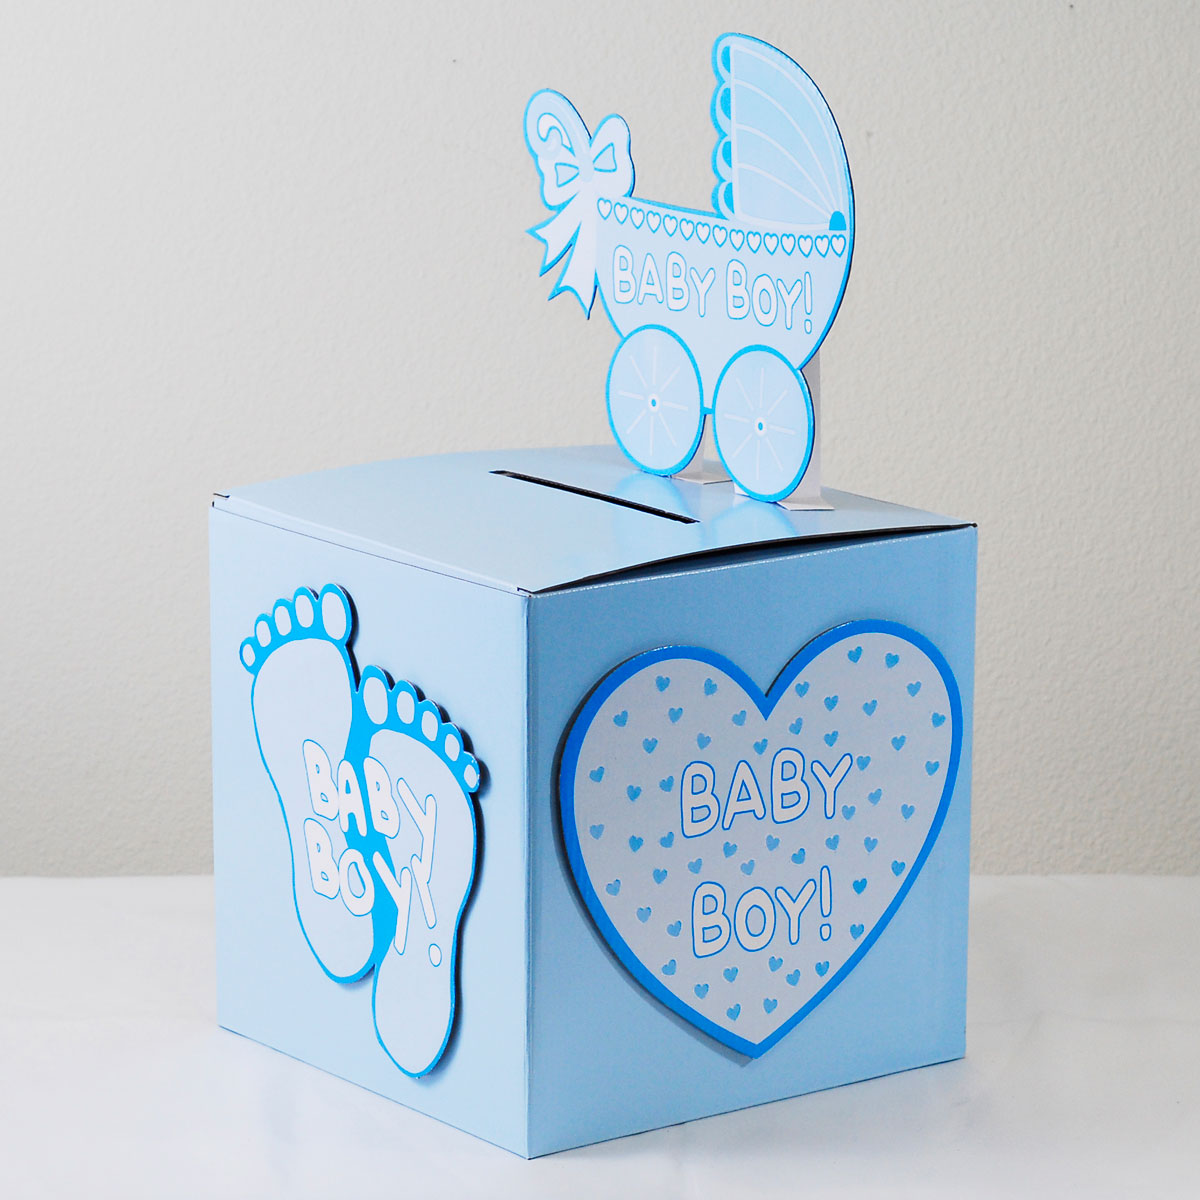 Baby shower in a box ideas